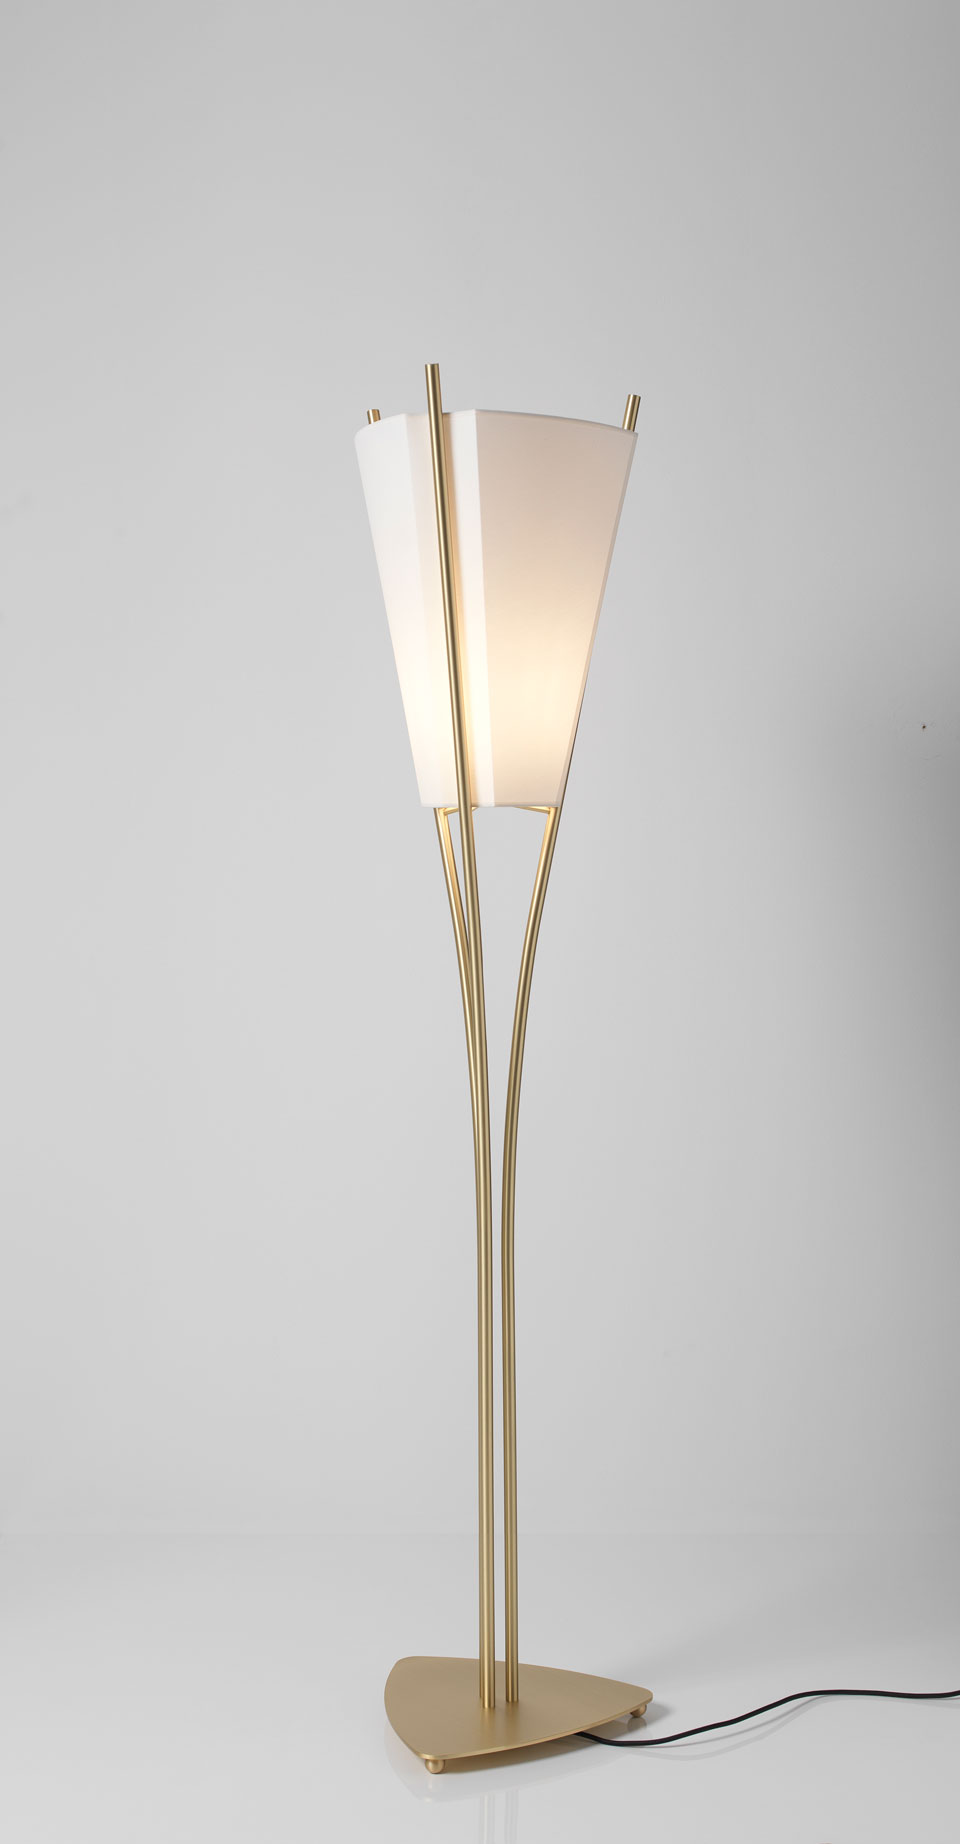 Curve design floor lamp small model in satin brass cvl luminaires curve design floor lamp small model in satin brass cvl luminaires aloadofball Gallery